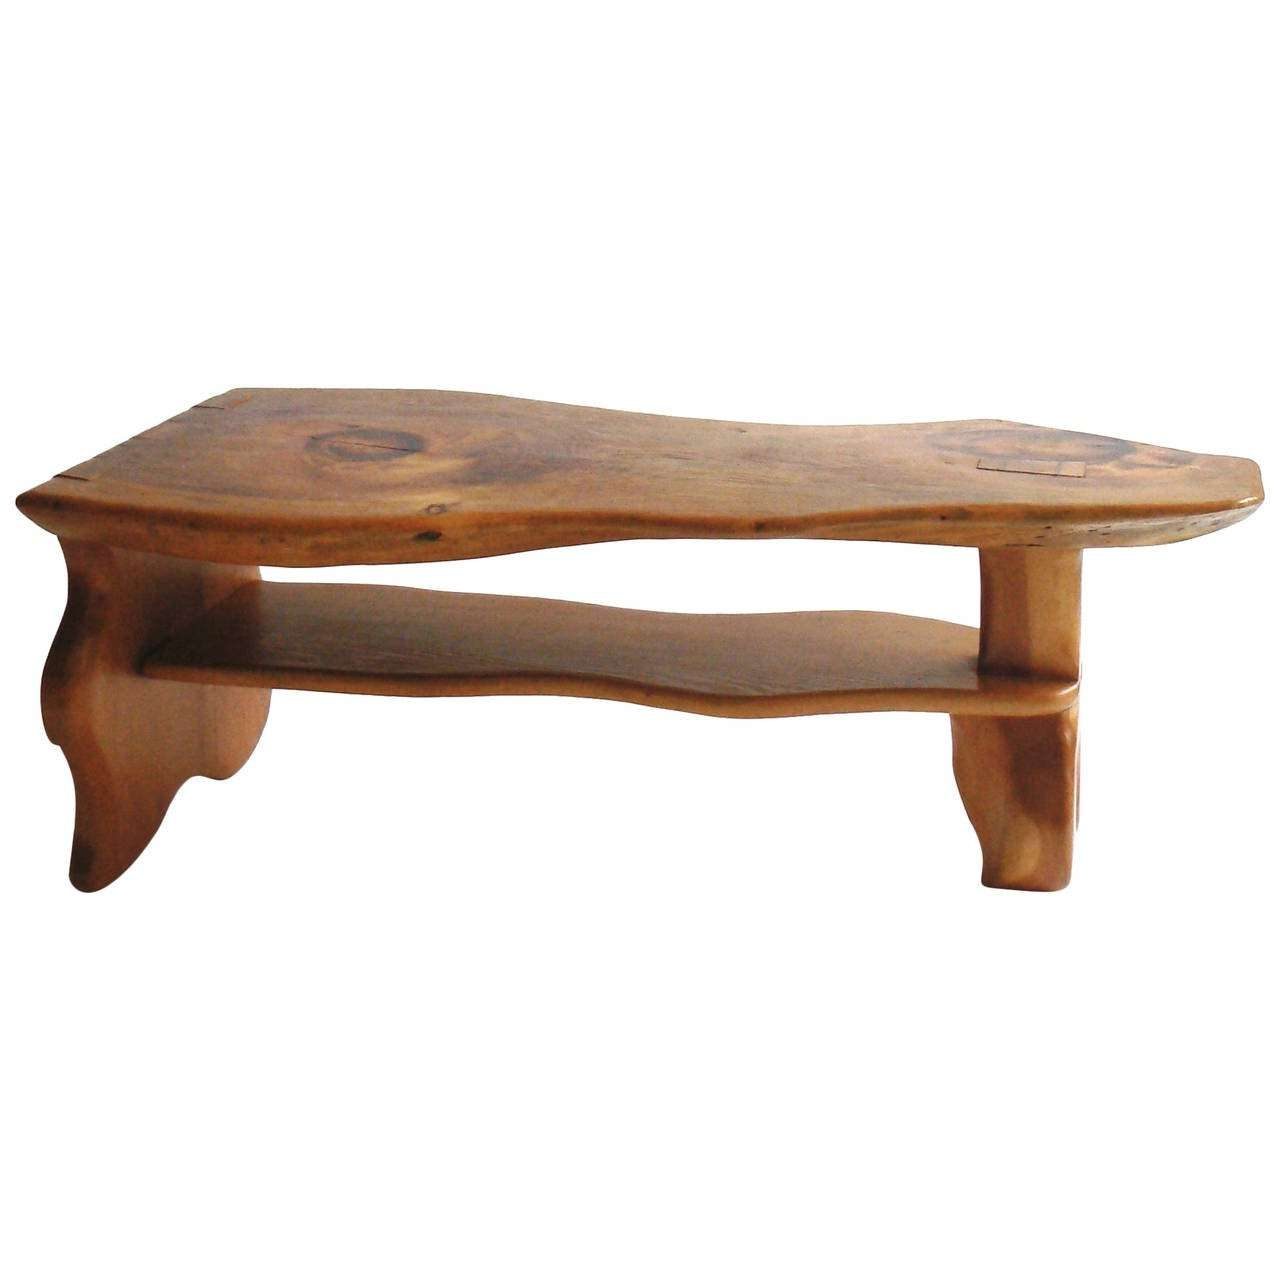 Carved Live Edge Coffee Table, Manner Of Alexandre Noll At 1Stdibs Pertaining To Well Known Live Edge Coffee Tables (View 5 of 20)